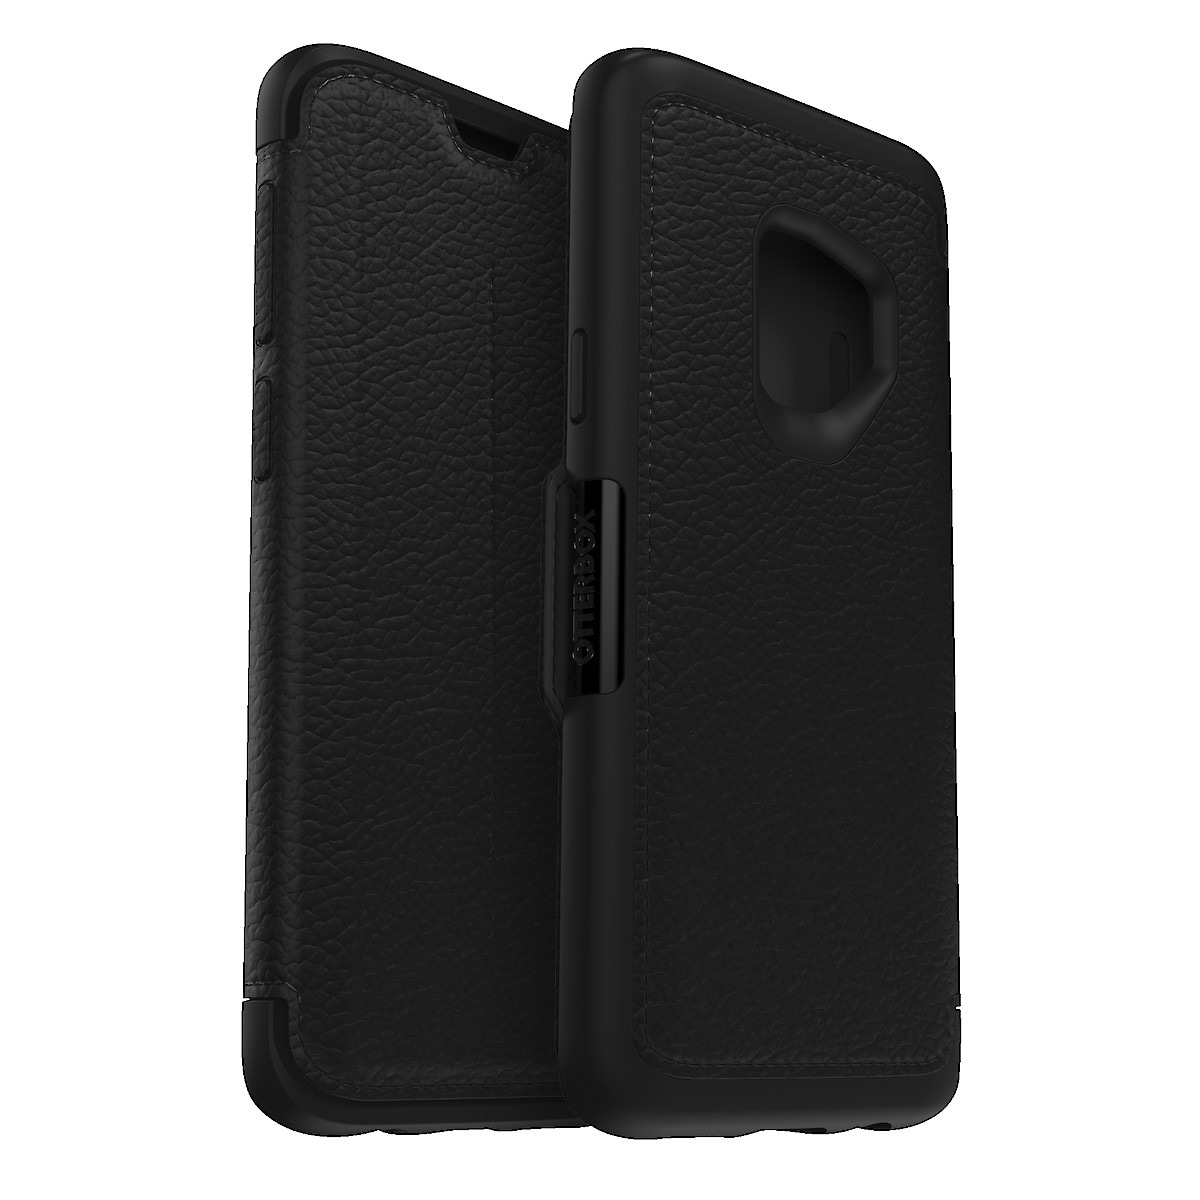 Otterbox Strada Protective Case for Samsung Galaxy S9